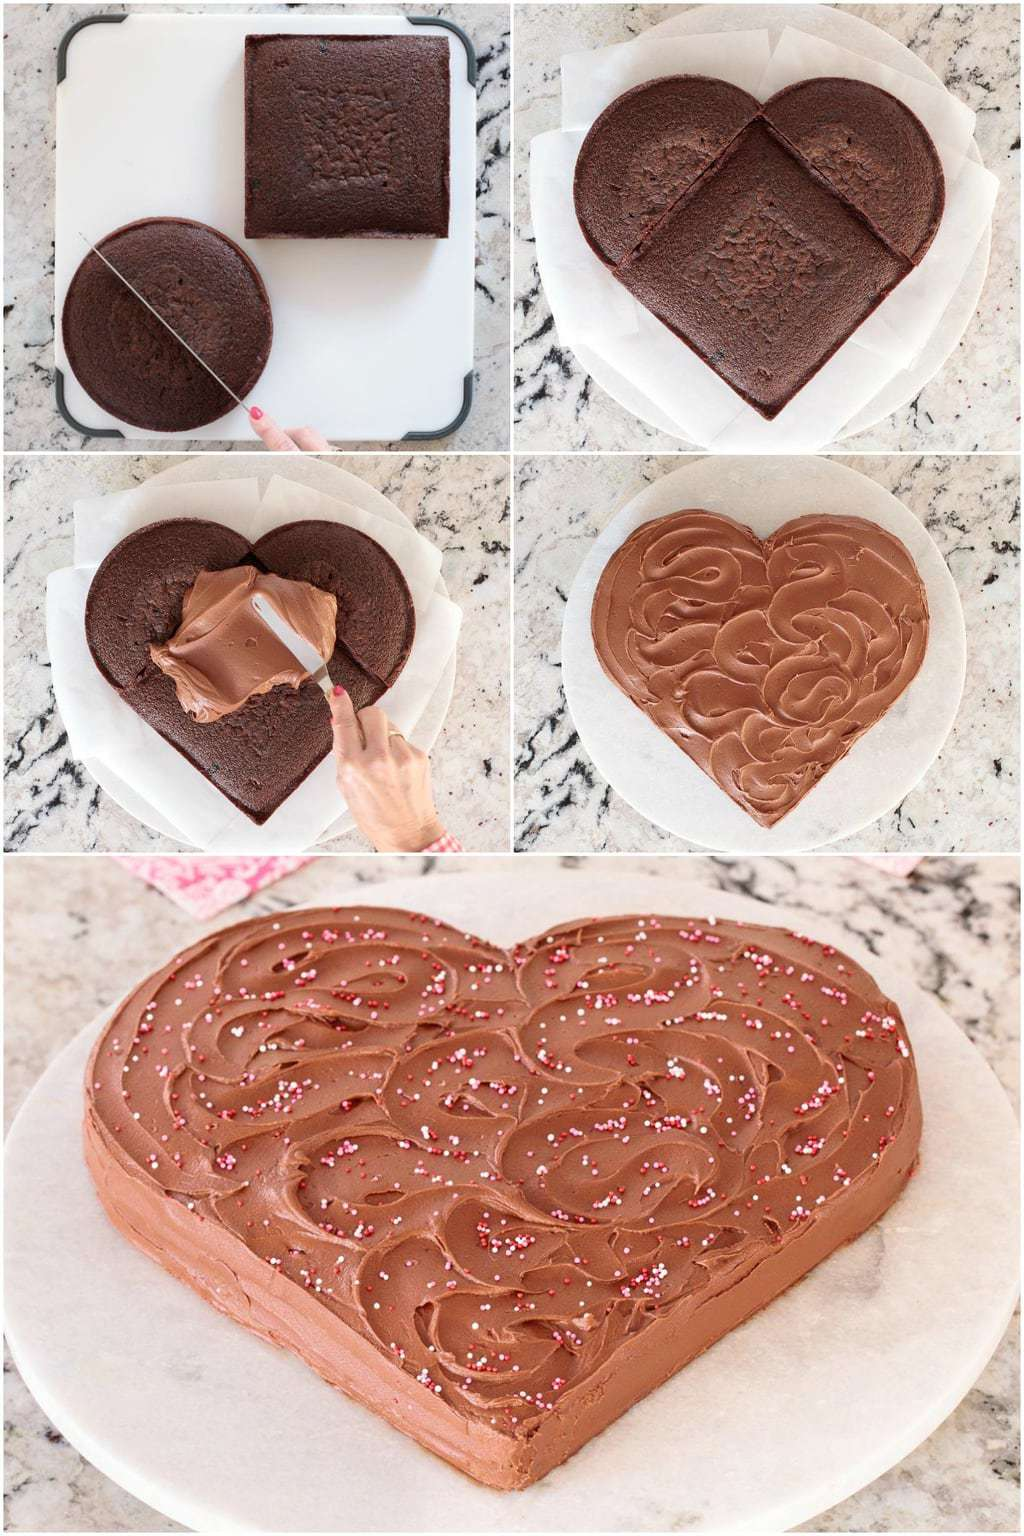 Picture of the easy process of making the heart shape with one square cake and one round cake, halved for this Easy, One-Bowl Chocolate Heart Cake.